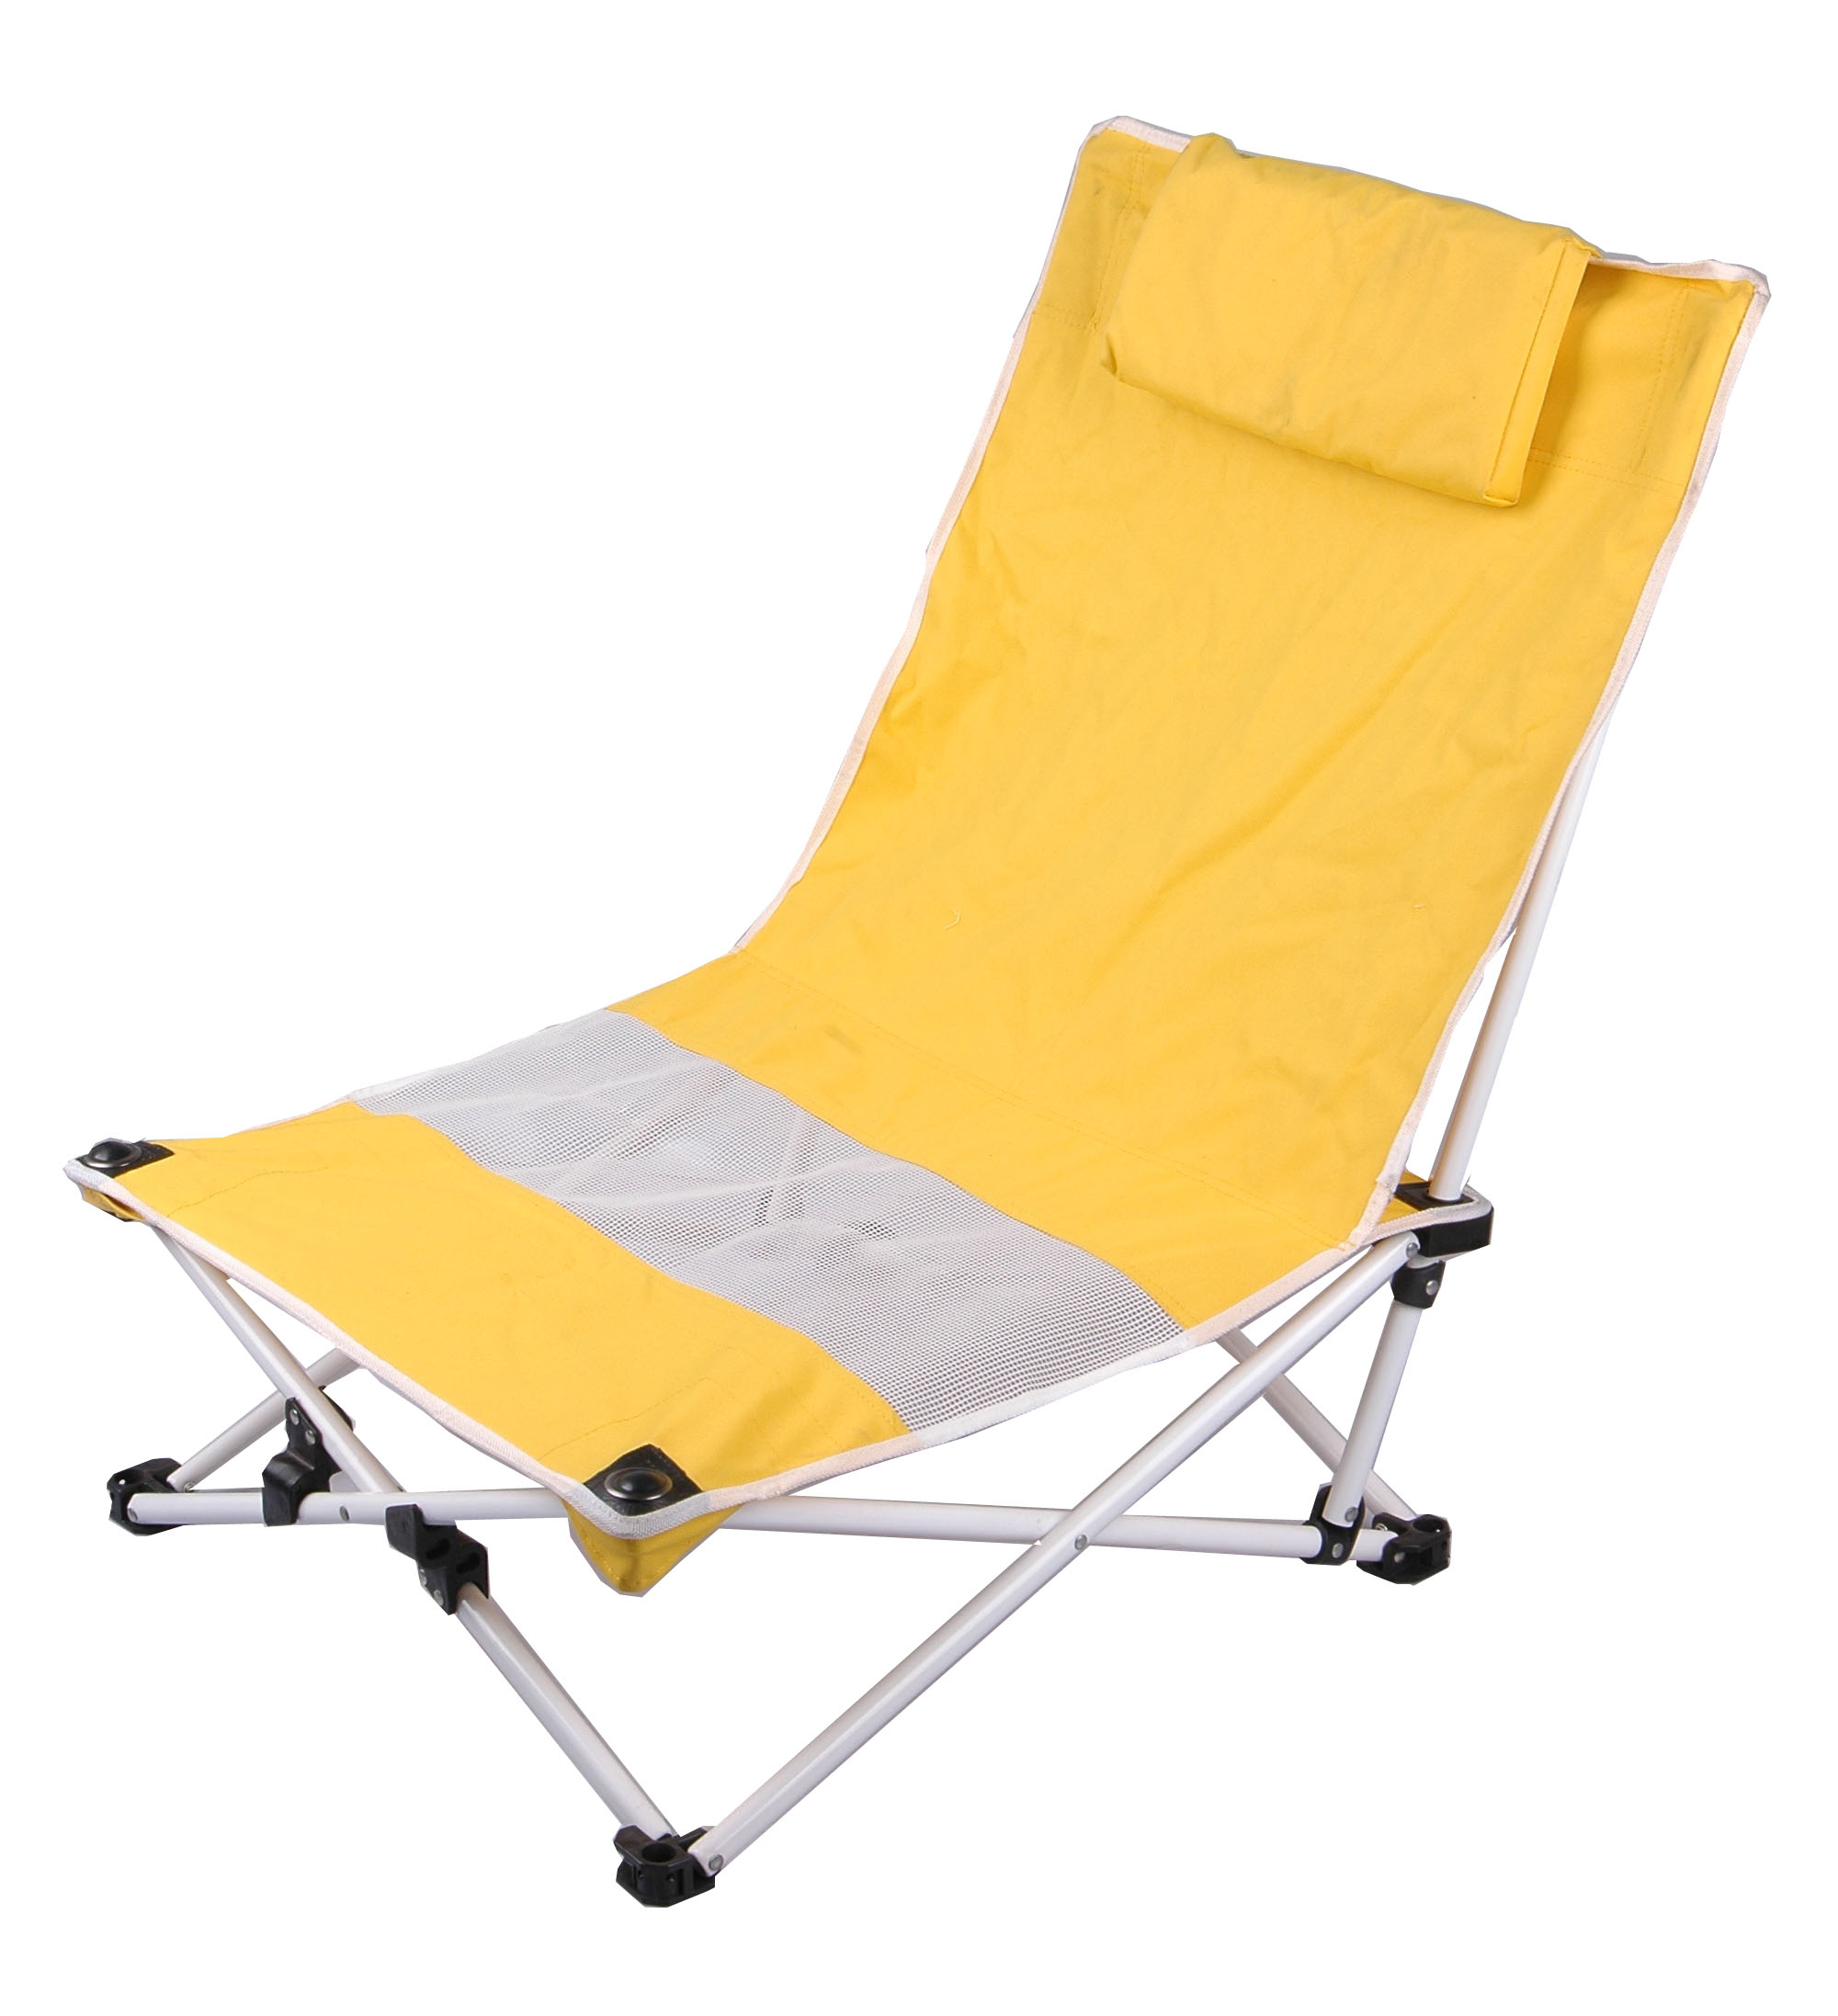 Folding Camping Chair/lawn Chairs/camping Chair/portable Regarding Recent Foldable Camping And Lounge Chairs (View 10 of 25)